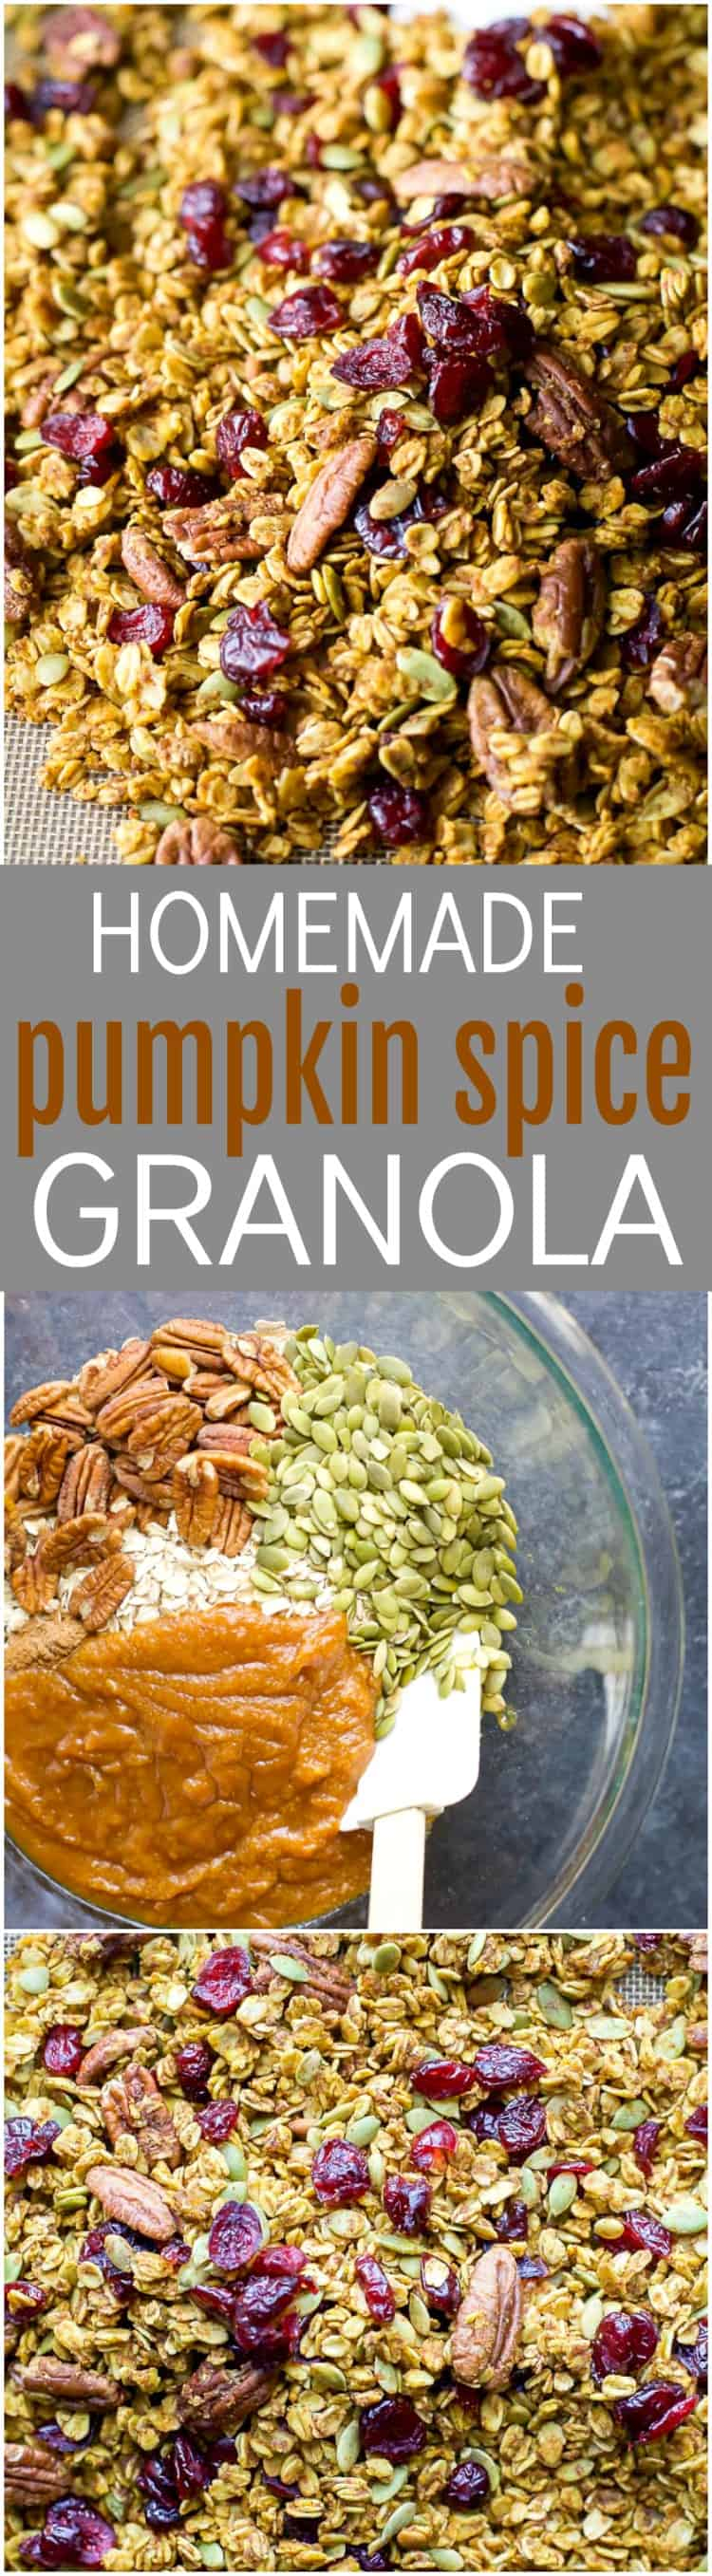 An easy healthy and Homemade Pumpkin Spice Granola Recipe you'll want to indulge on year round! All your favorite fall flavors in one granola recipe - pumpkin, allspice, nutmeg, cloves, cinnamon ... its fall in a bite! Only 190 calories a serving!